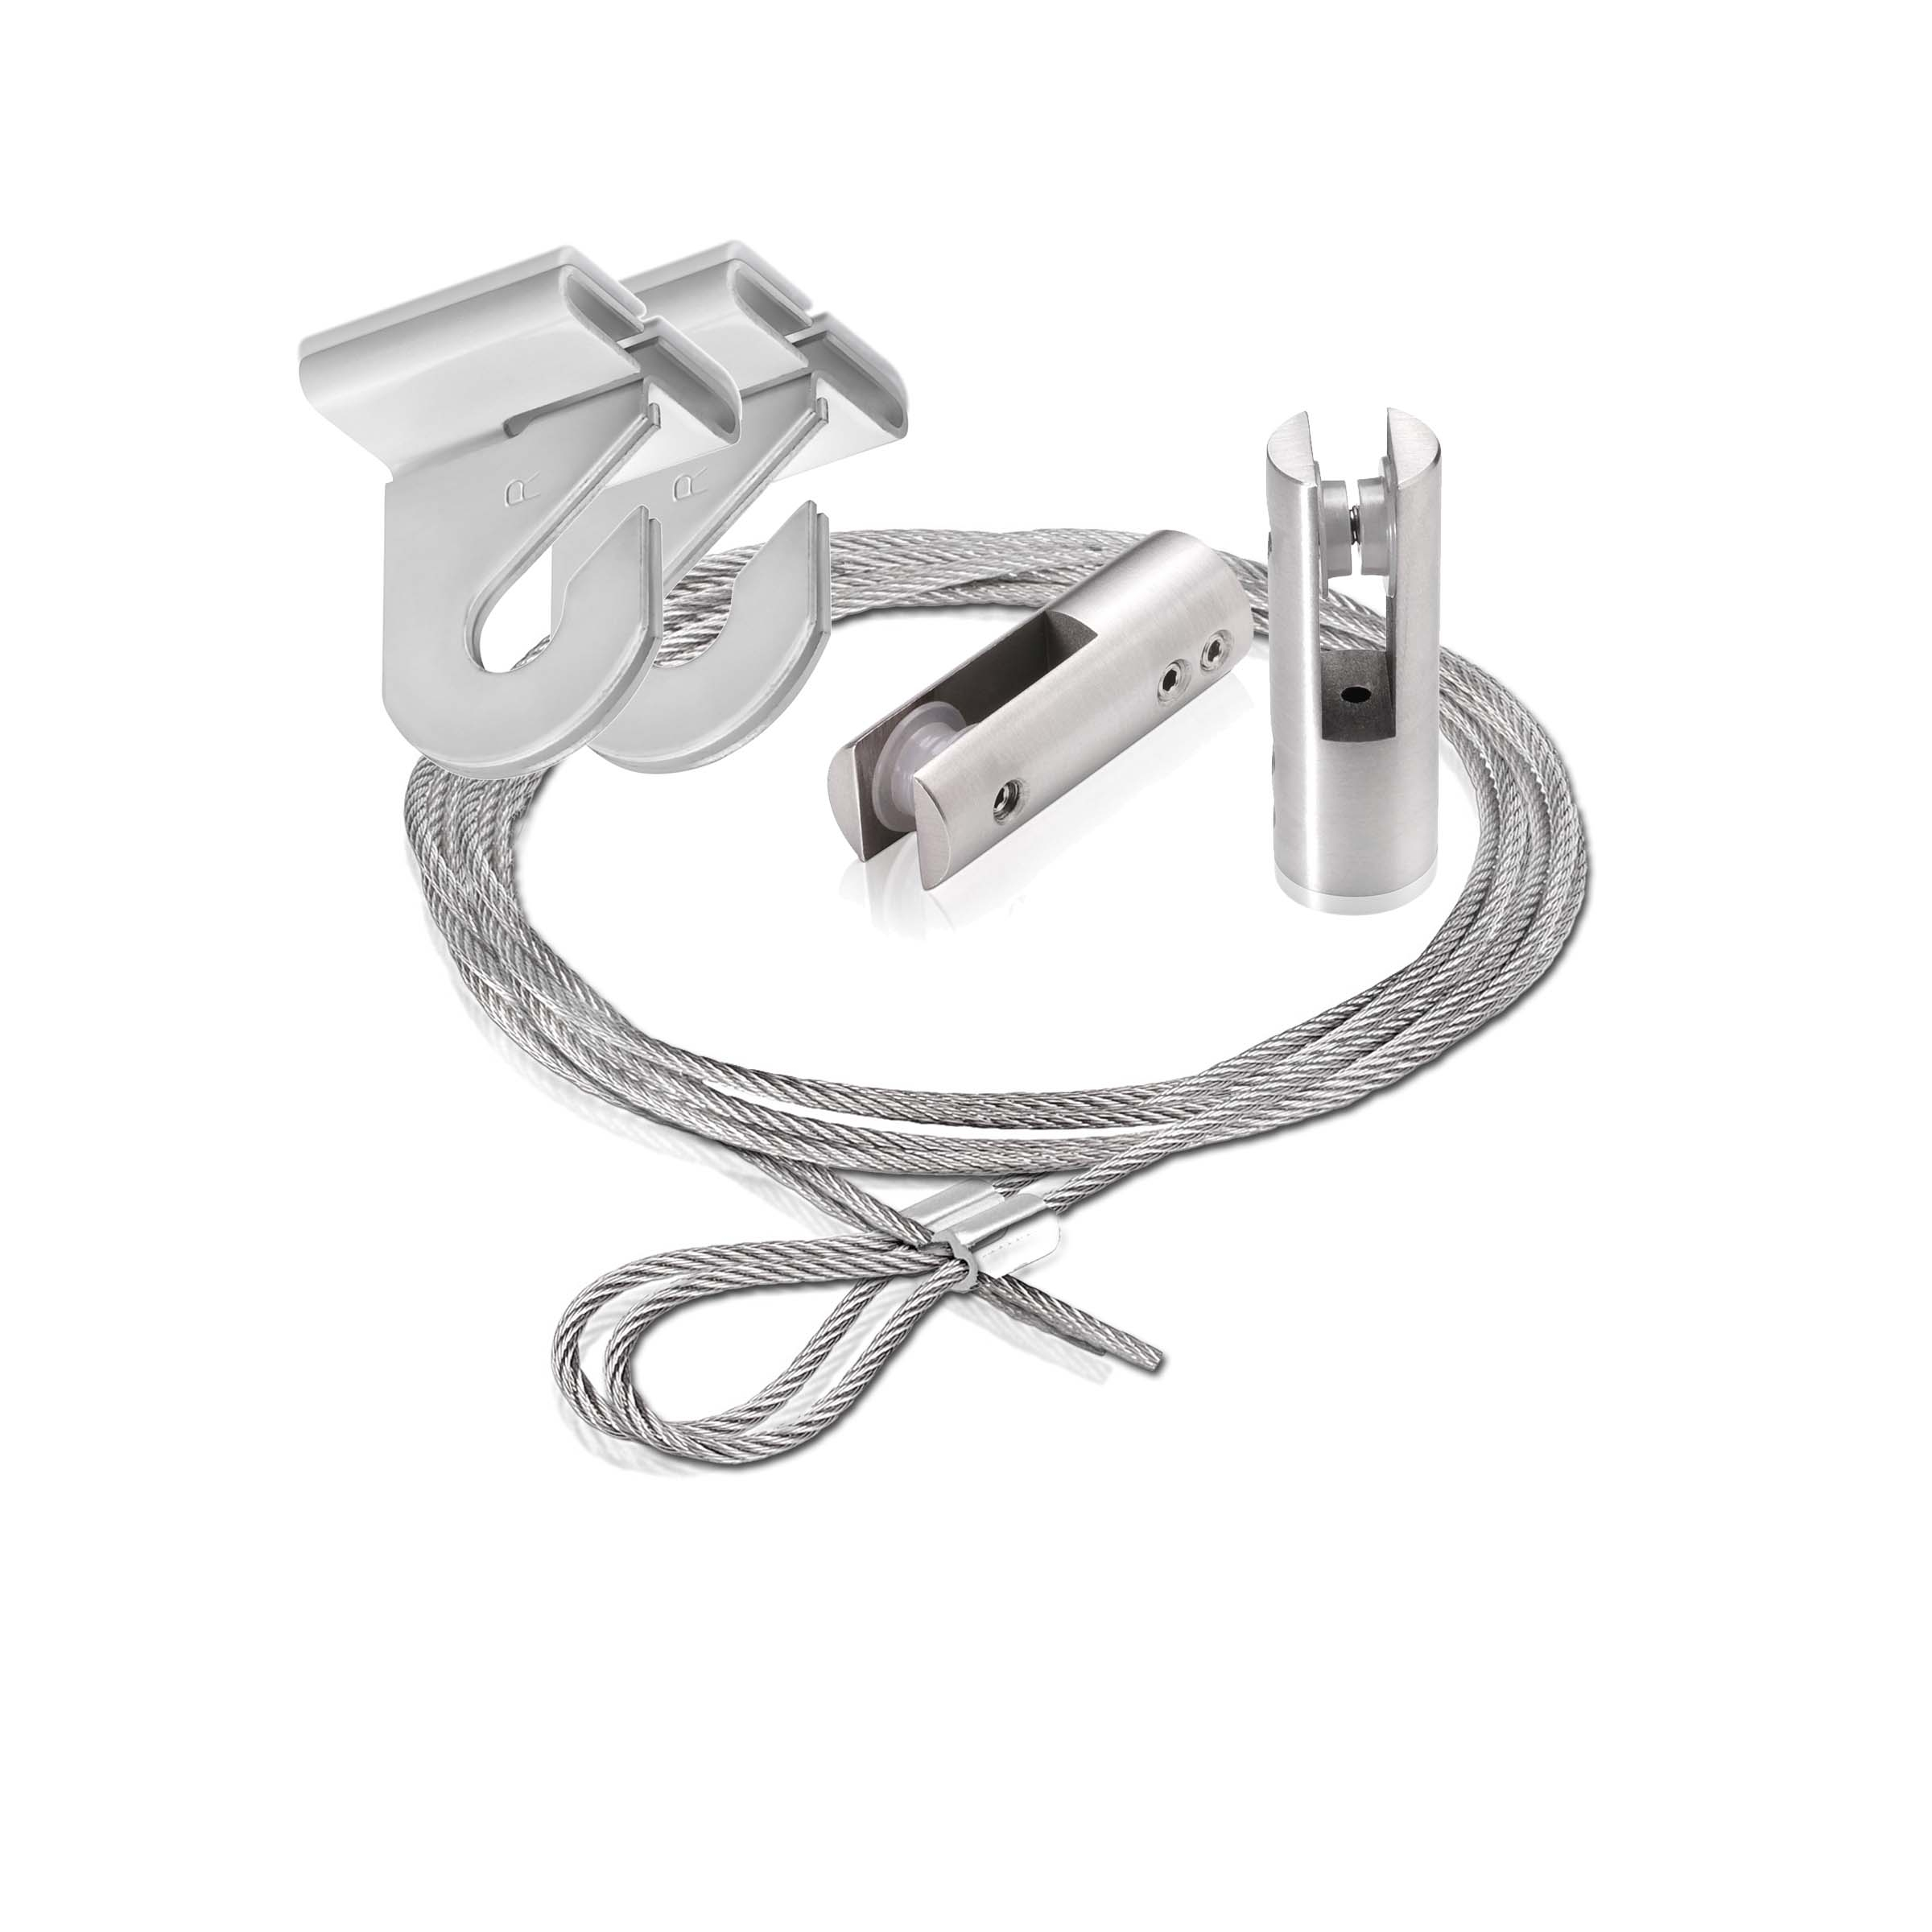 2 piece of 120'' Aluminum Clear Anodized Suspended Cable Kits (2 Full Sets)